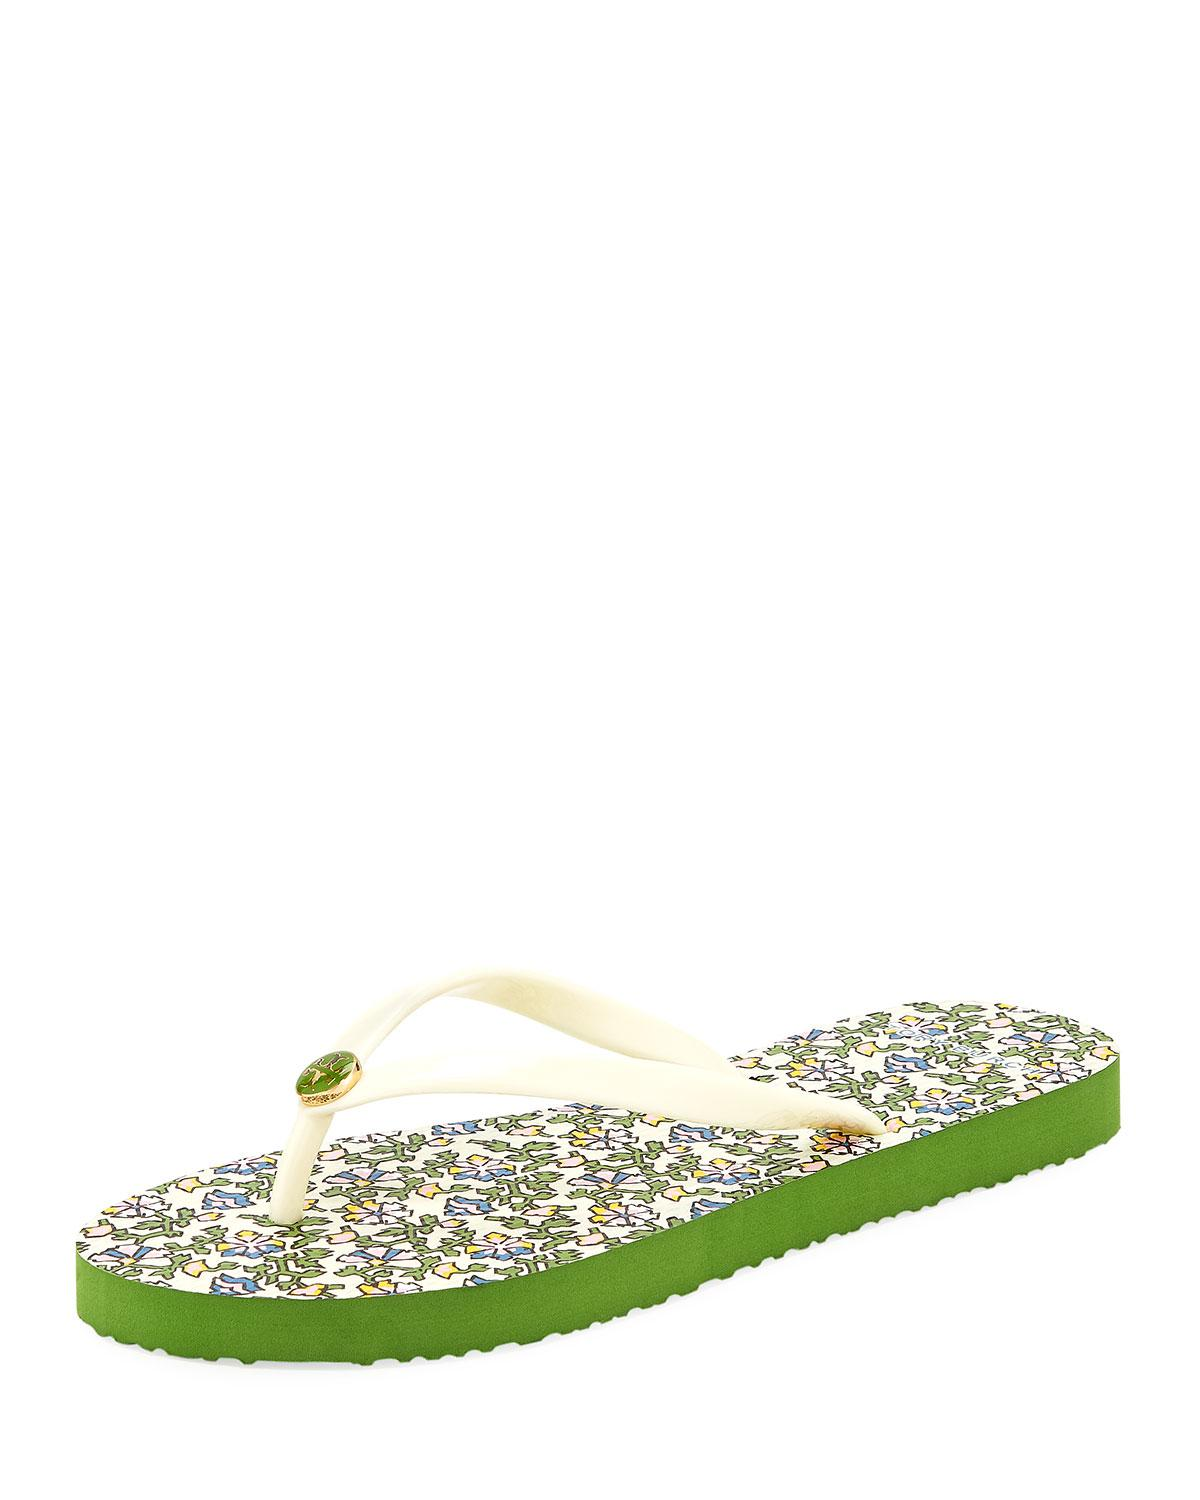 57cb3d58a40944 Answer with the Tory Burch® Thin Flip Flop! Rubber upper material. Slip on  design. Open toe. Thong-style silhouette. Signature brand logo detail.